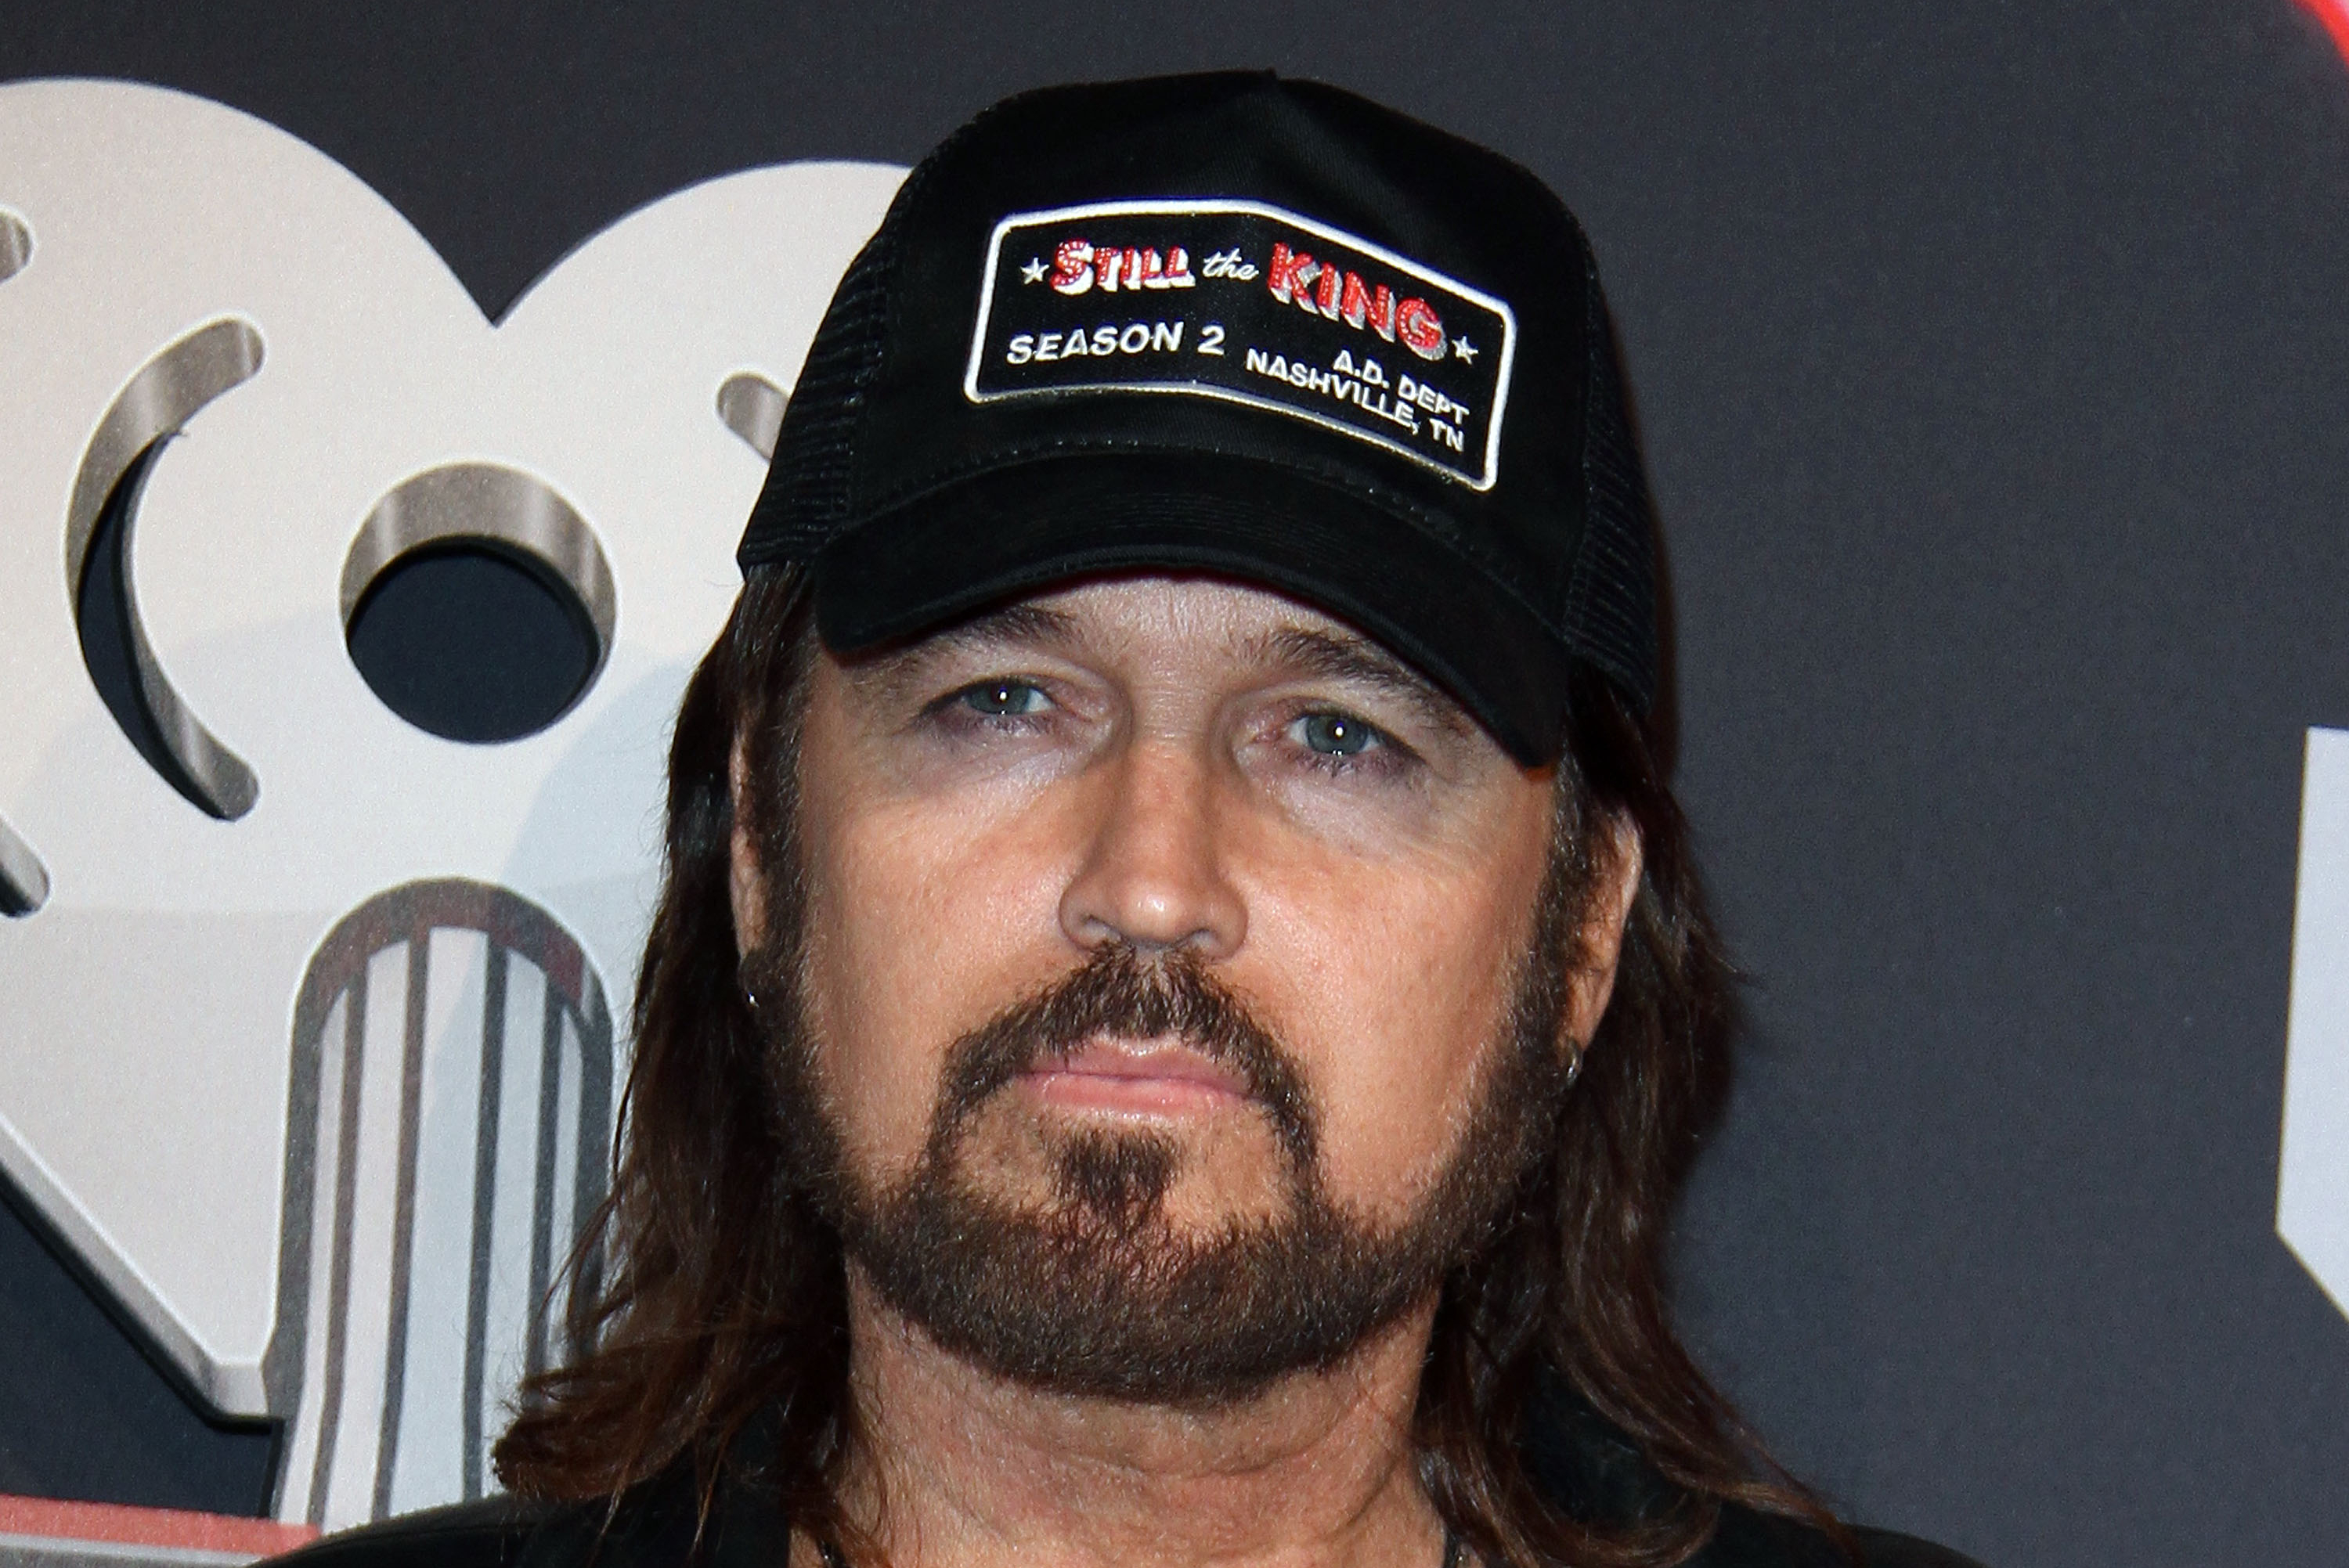 Billy Ray Cyrus Plans to Just Go by 'Cyrus' Now | The Blemish